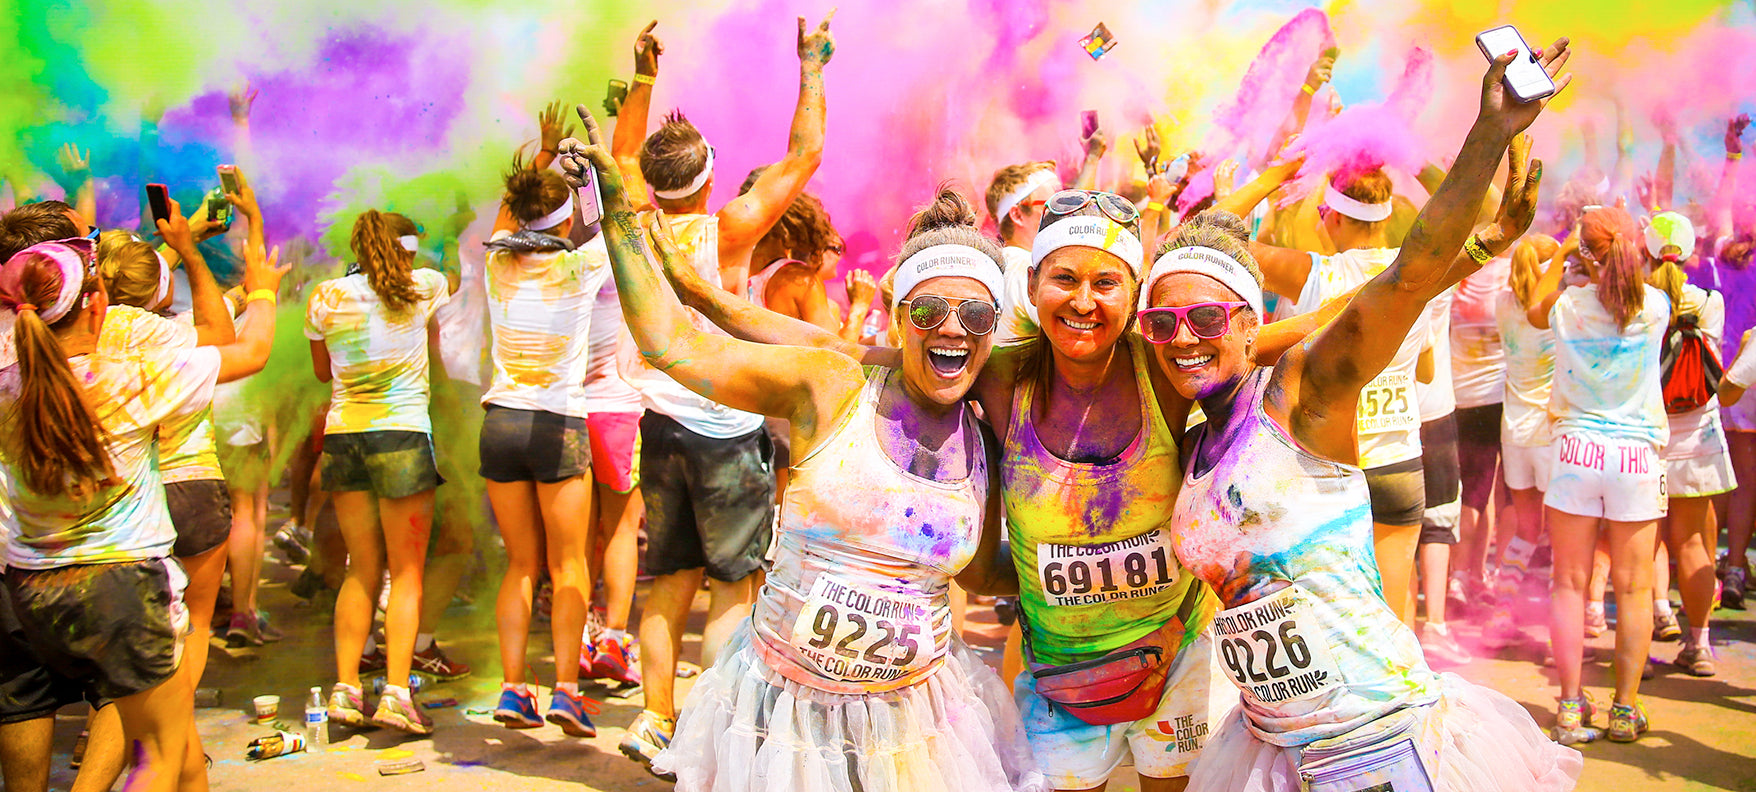 Color Run Supplies. 87 likes. All your color run needs. We can provide you with a single packet of color, or full management of your groups event.